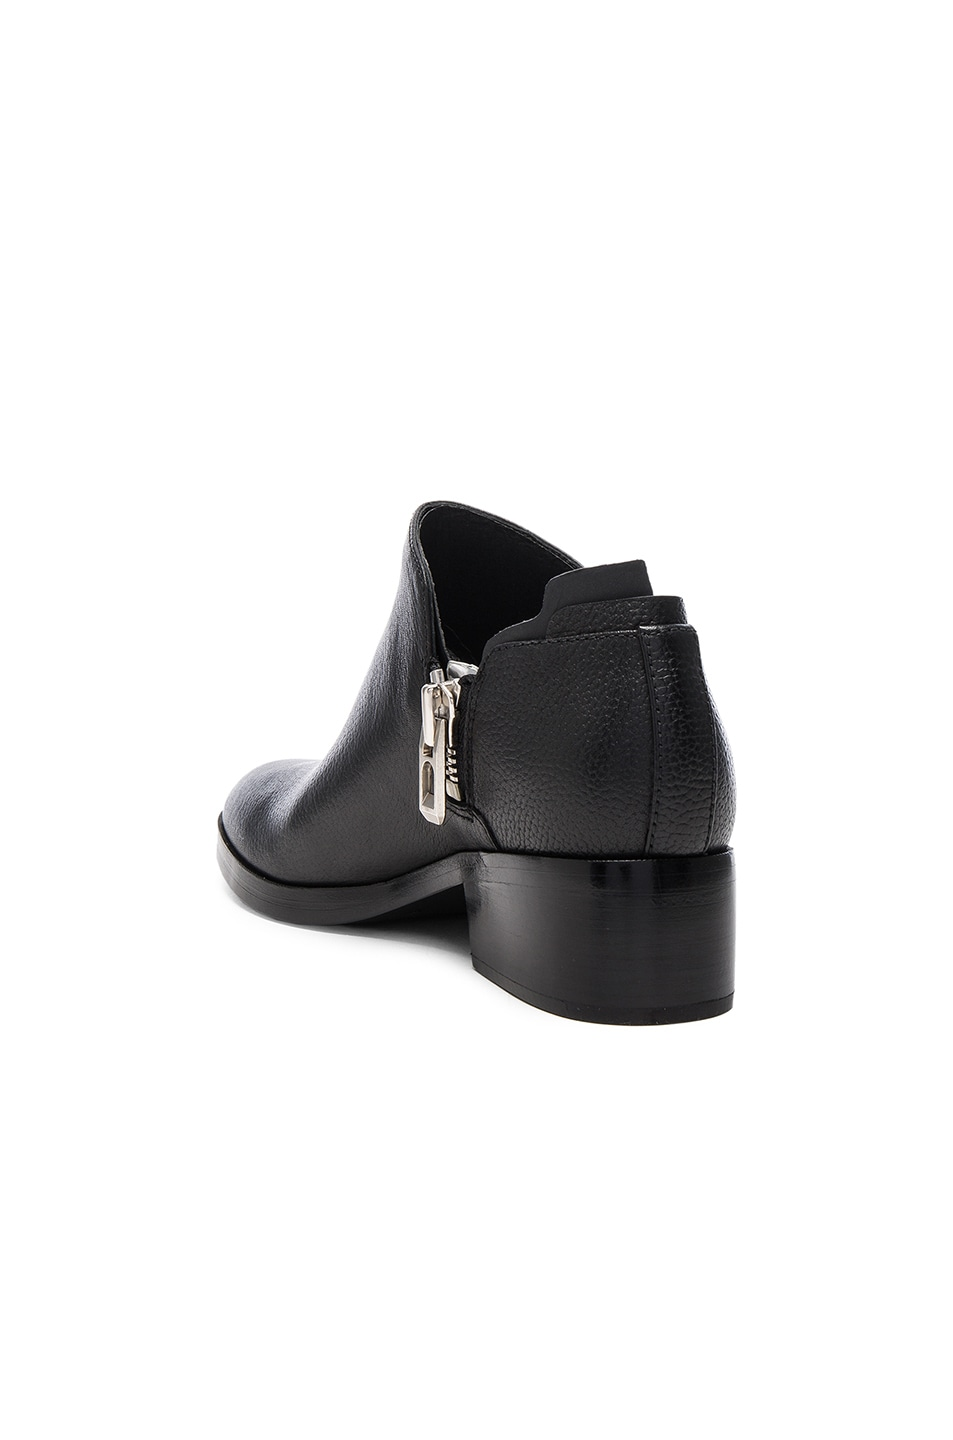 Image 3 of 3.1 phillip lim Leather Alexa Ankle Booties in Black